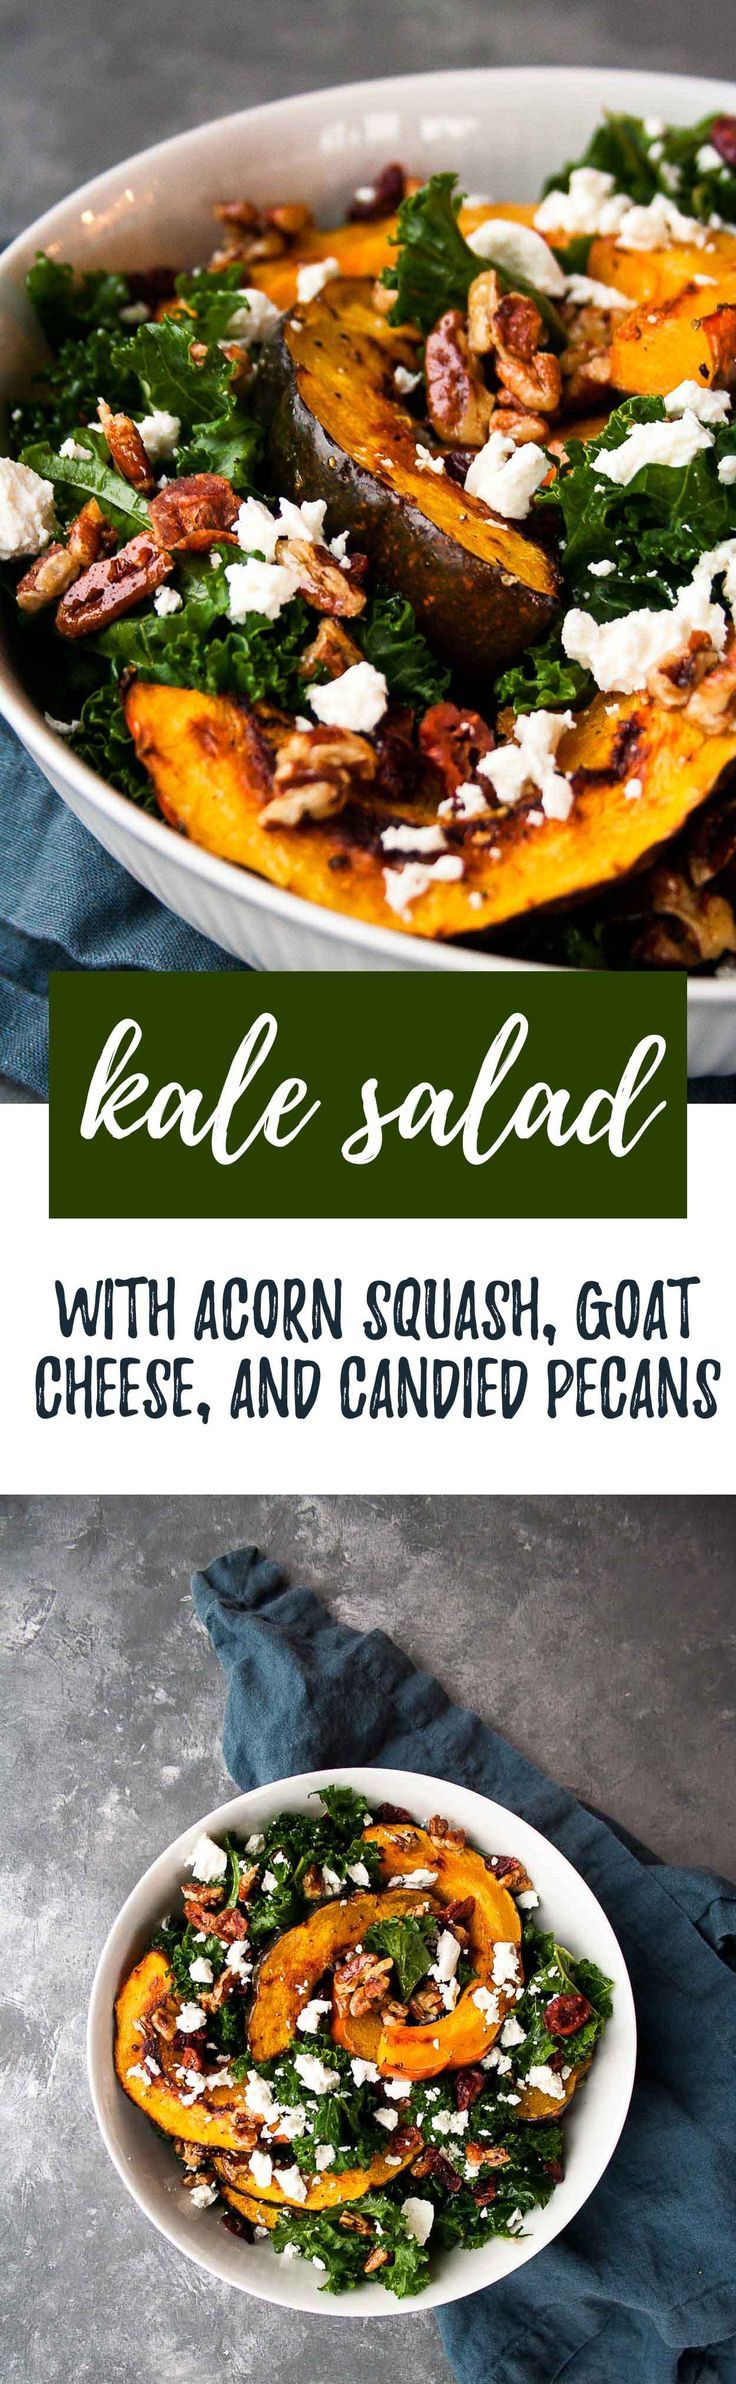 Kale Sald with Acorn Squash, Goat Cheese, and Candied Pecans | Paleo | hungrybynature.com